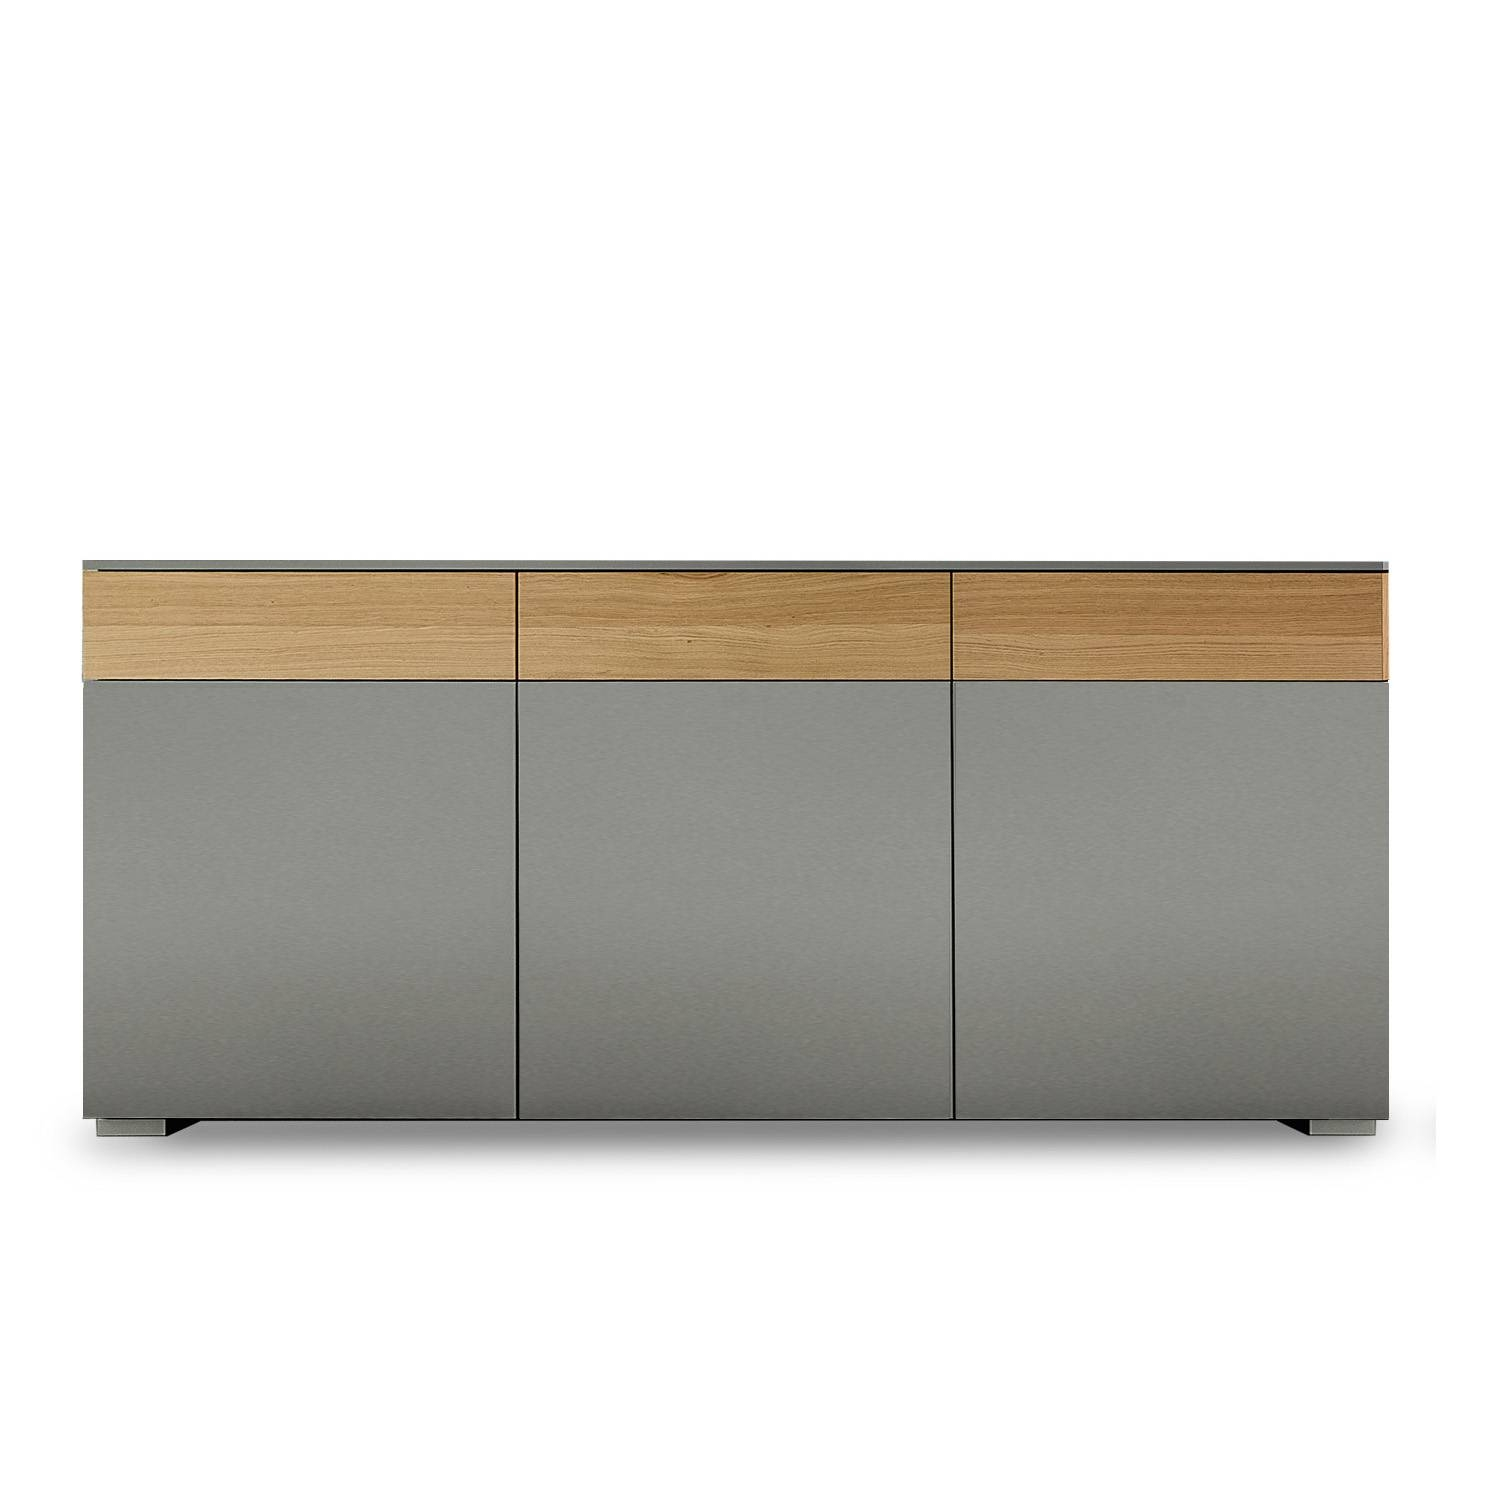 Large Modern Italian Sideboard, L 192 – W 48 – H 80 Cm + Feet At With Regard To Slim Sideboards (#12 of 20)